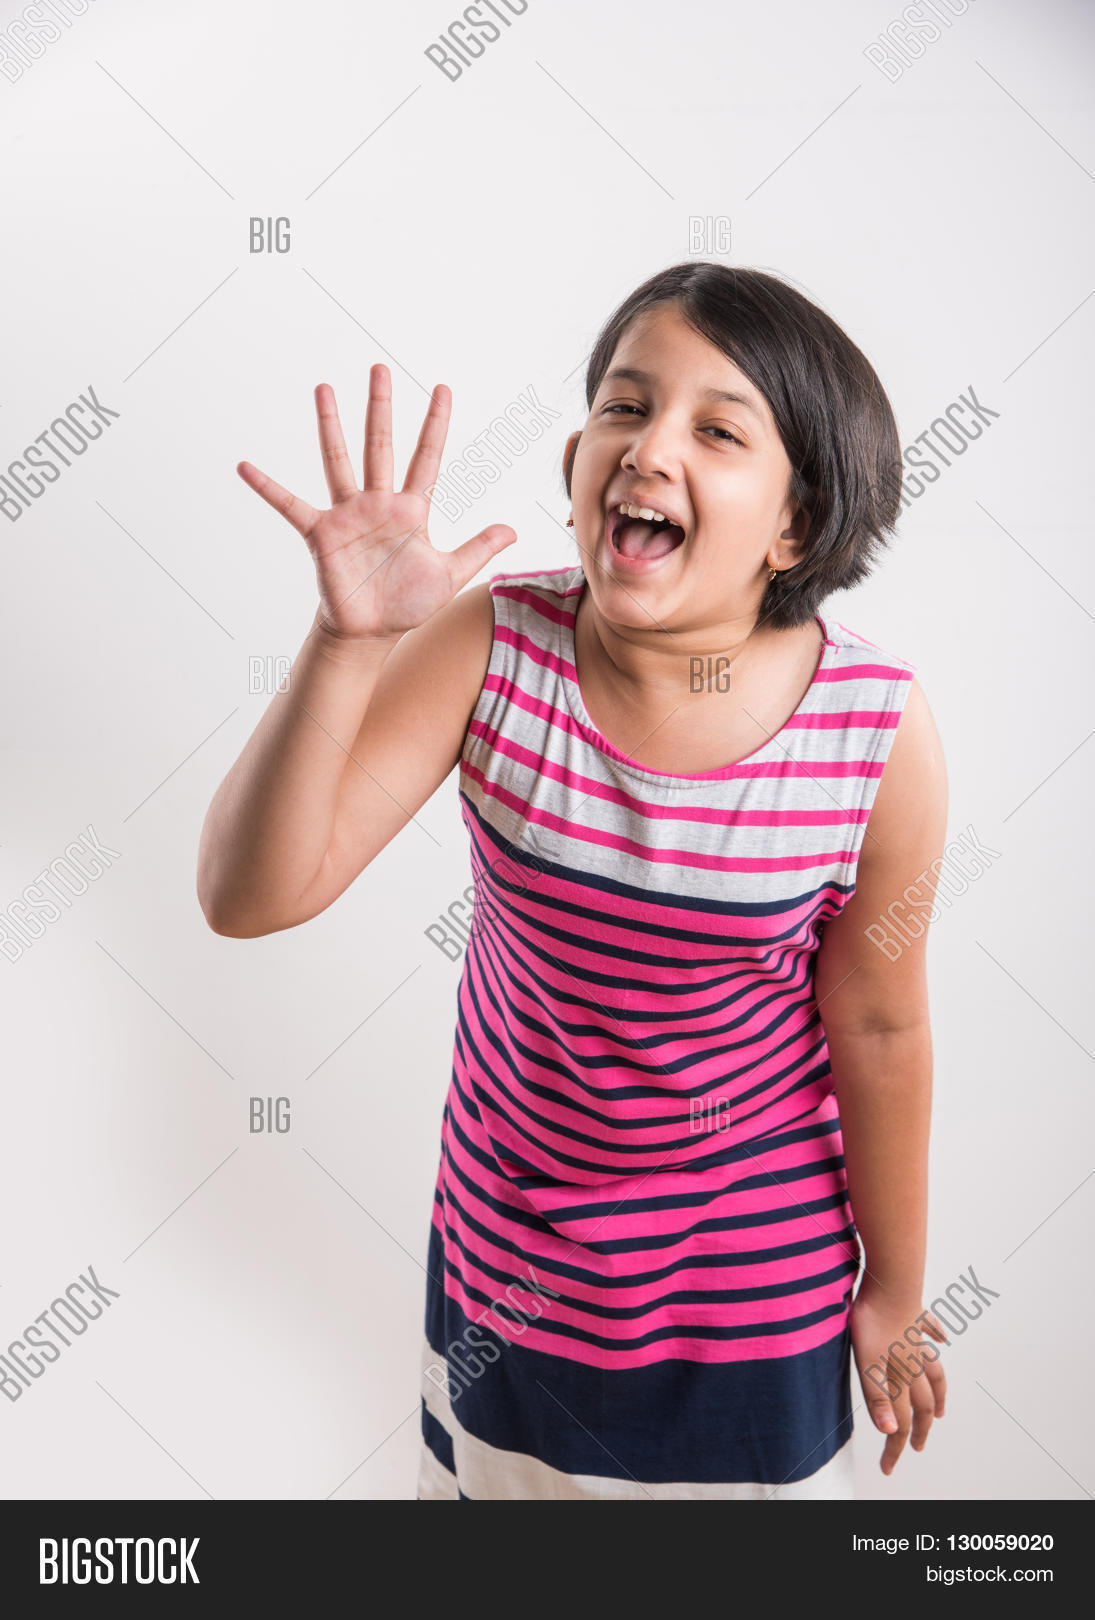 indian small girl counting five, asian small girl showing 5 fingers or five  numbers with